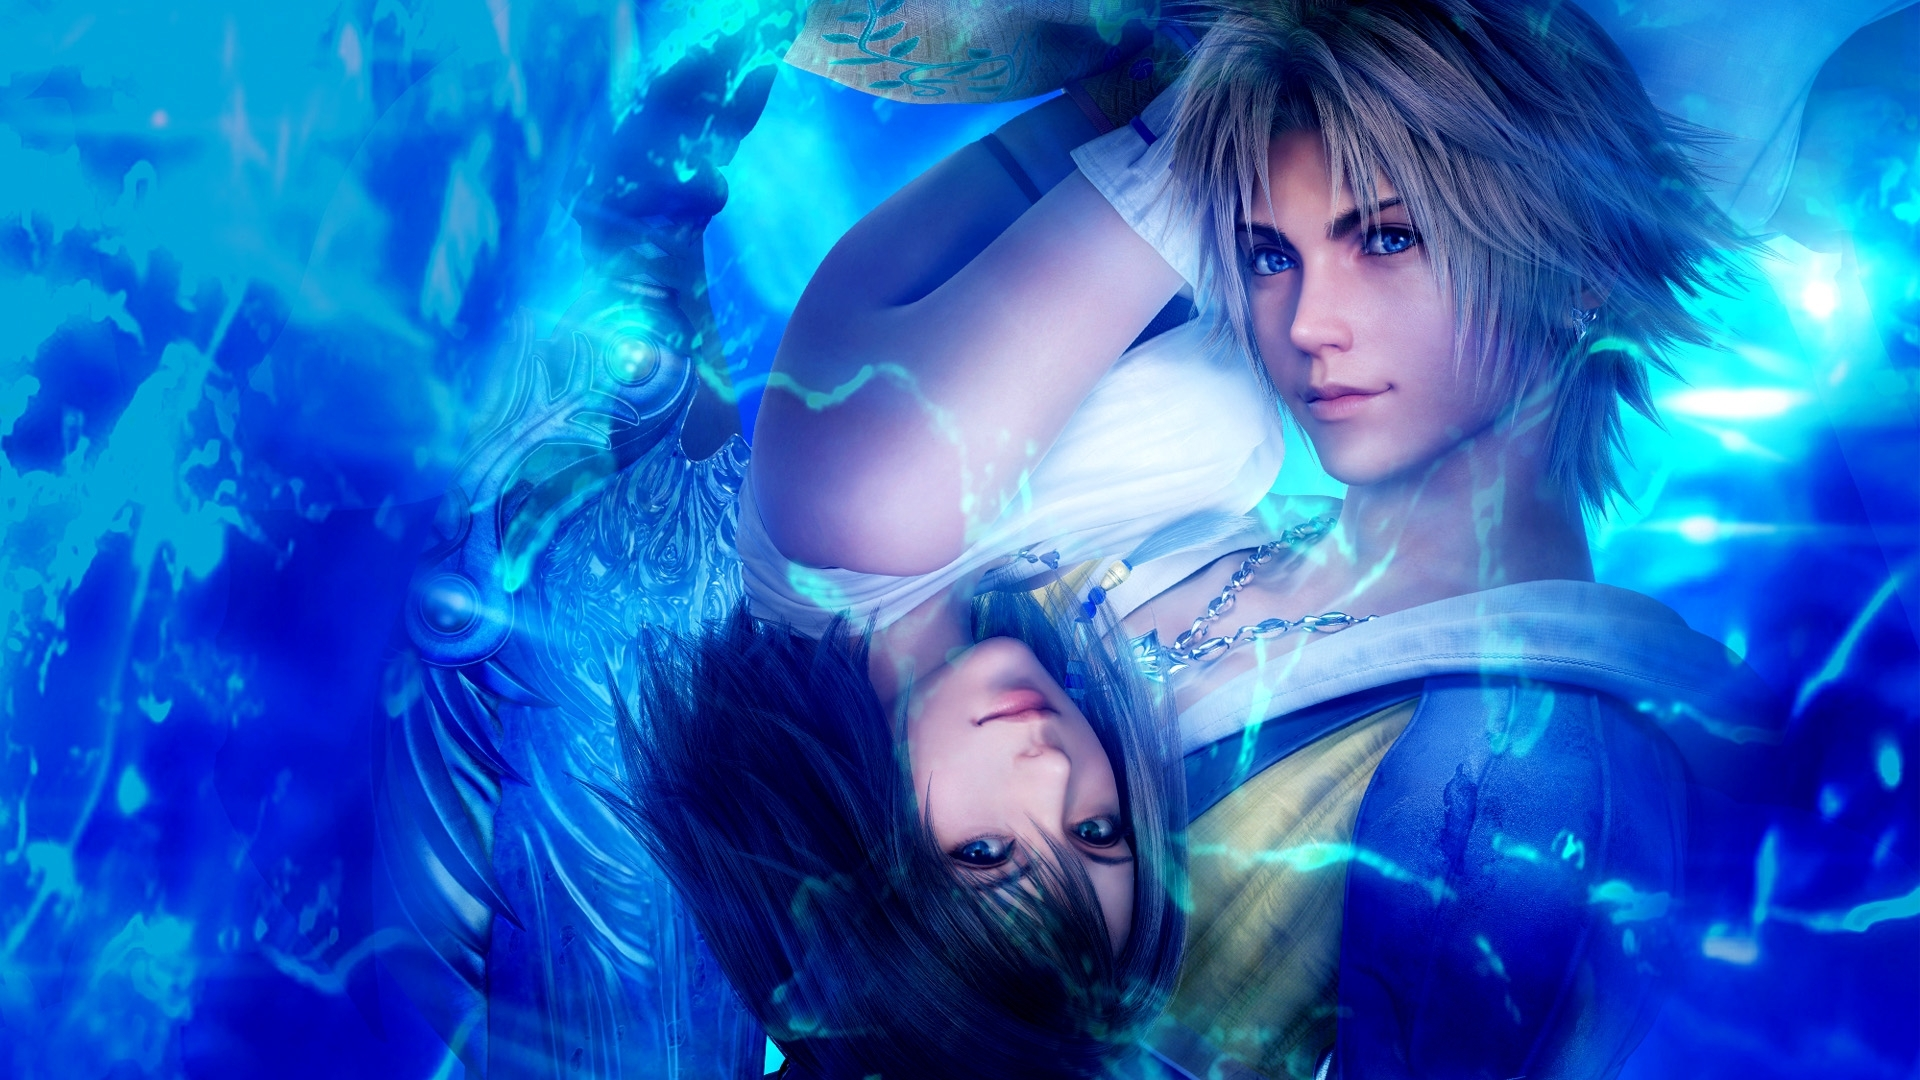 final fantasy x/x-2 remaster wallpaper full hd fond d'écran and